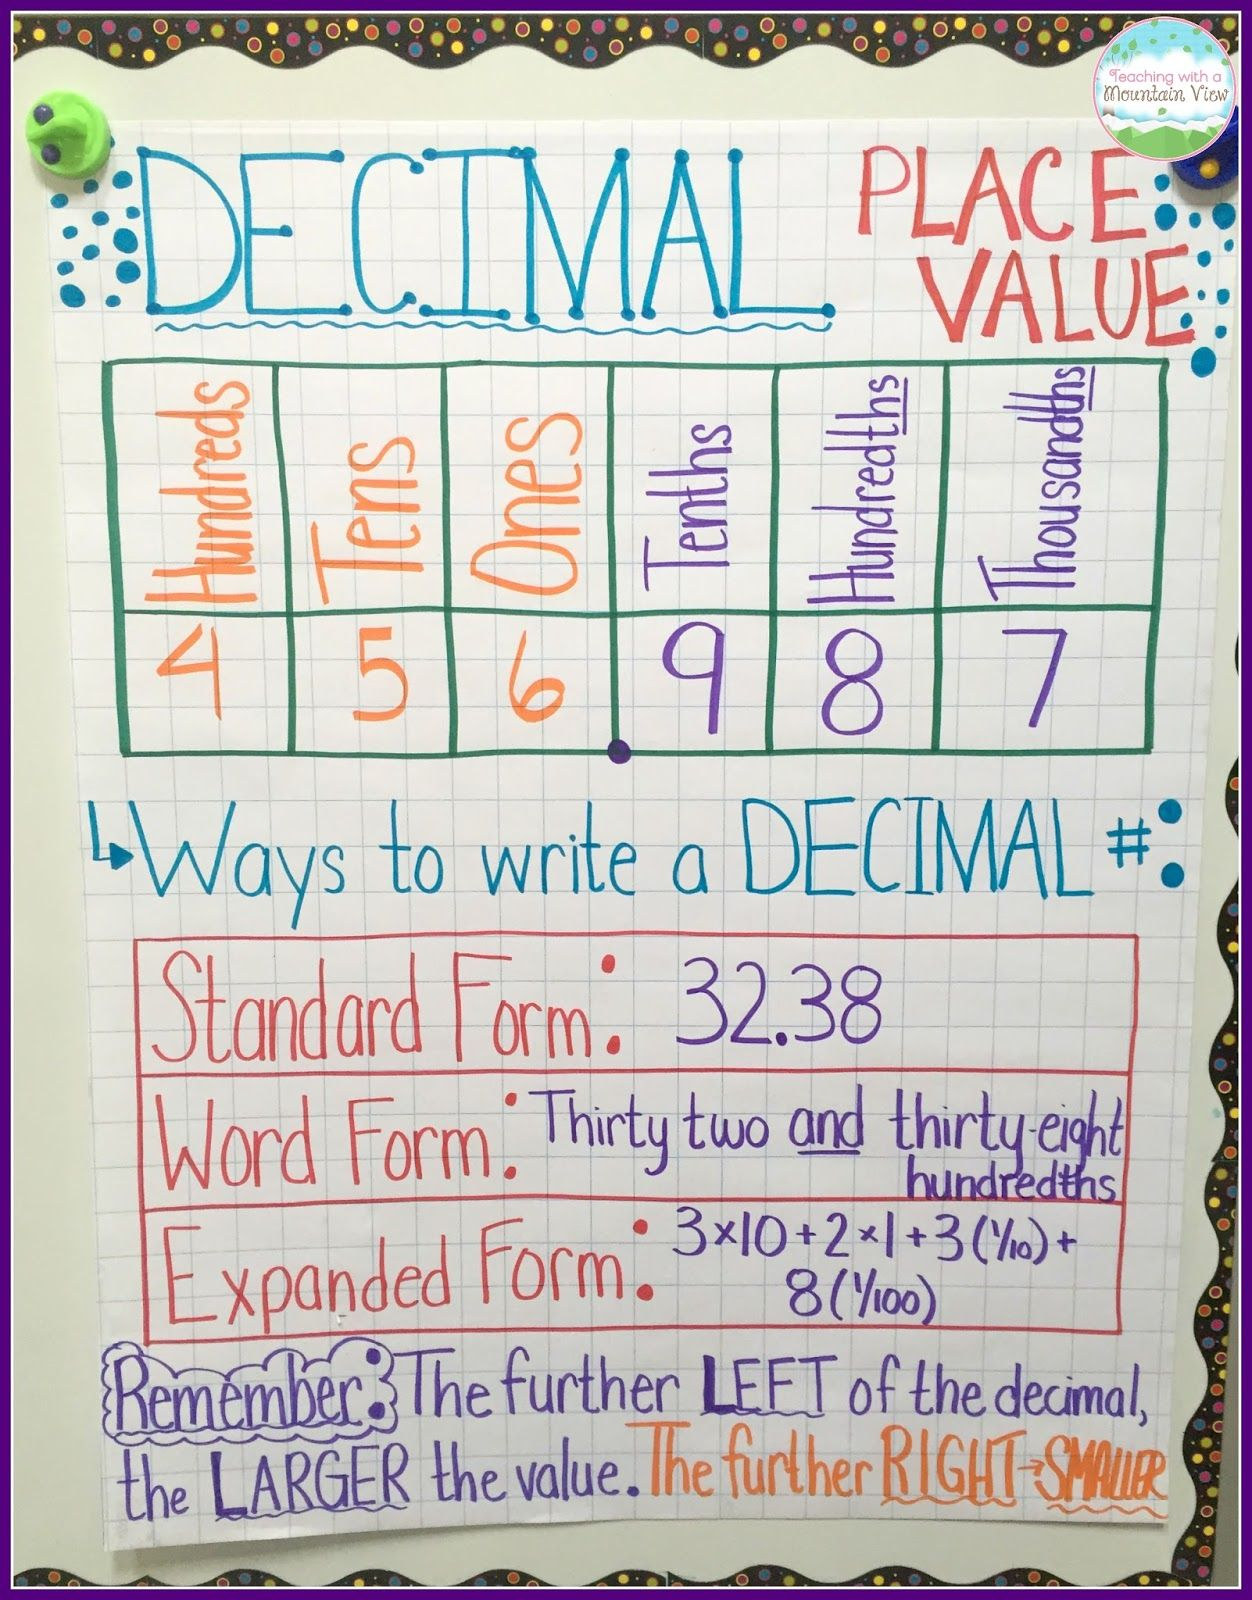 Decimal place value resources teaching ideas decimal places decimal place value resources teaching ideas falaconquin